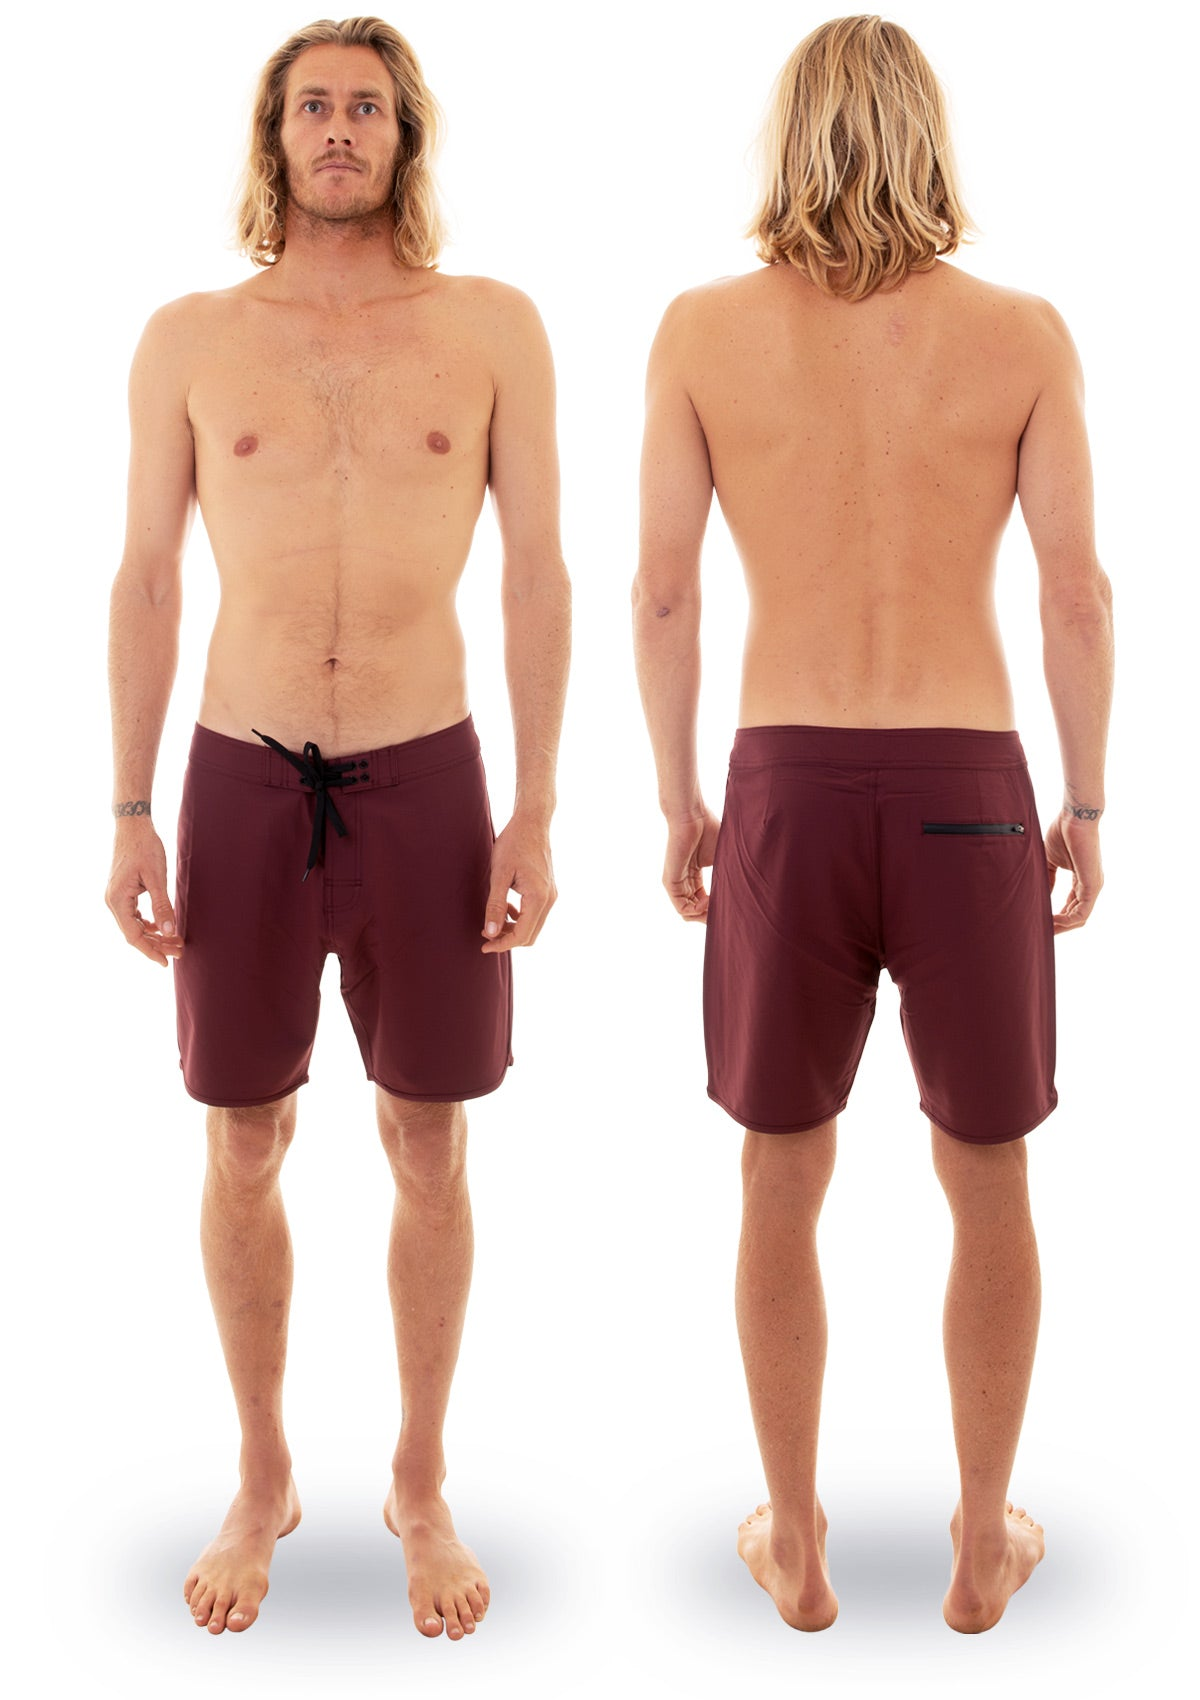 needessentials scallop mens surfing boardshorts non branded burgundy torren martyn